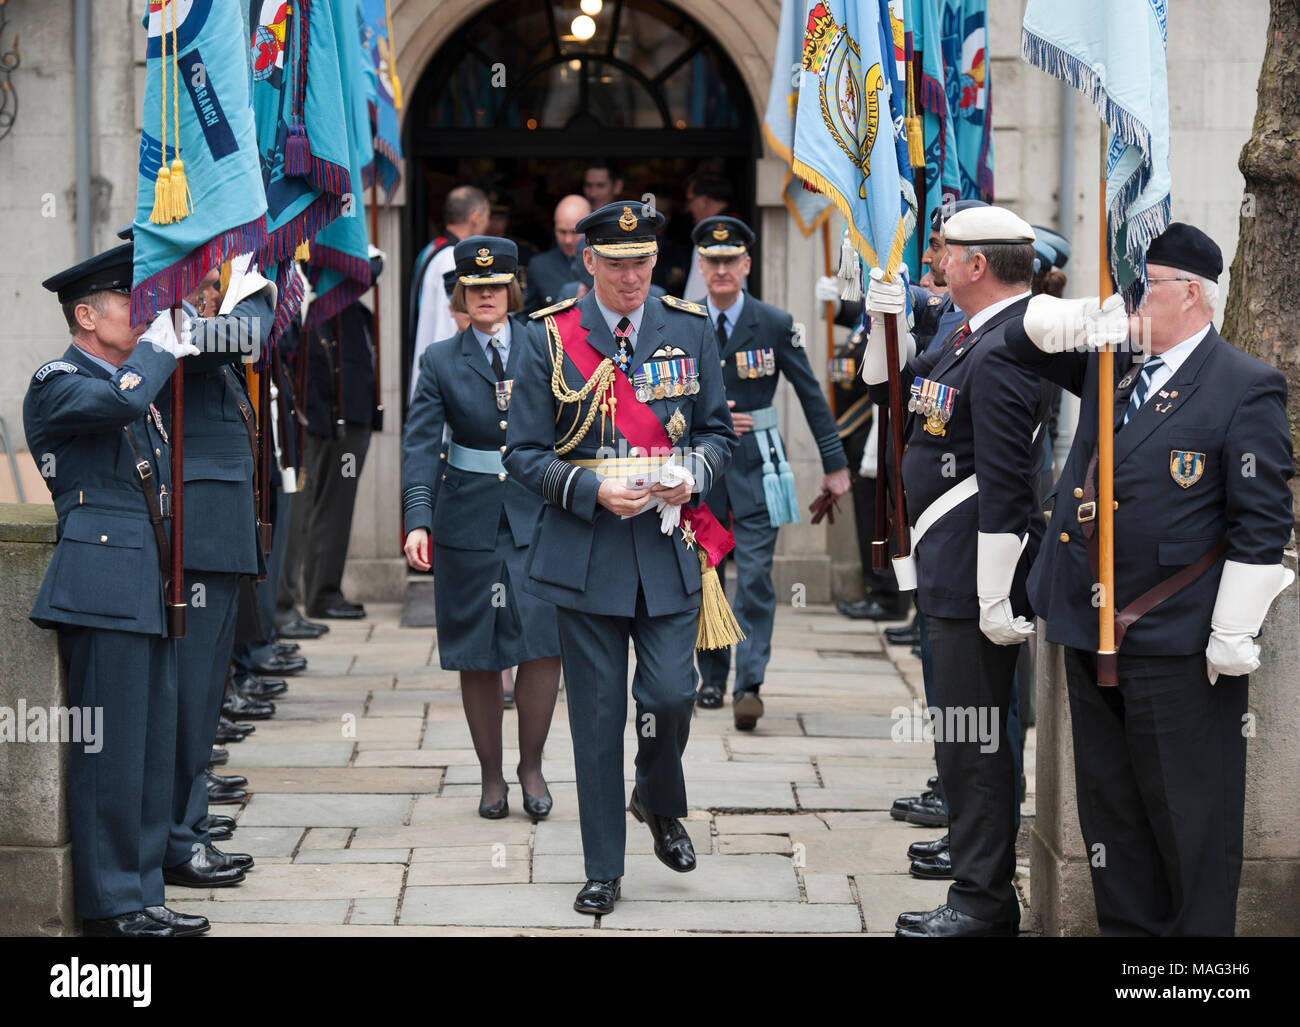 Serving and former RAF Officers leave St Clement Danes Church on The Strand in London, 1 April 2018. - Stock Image